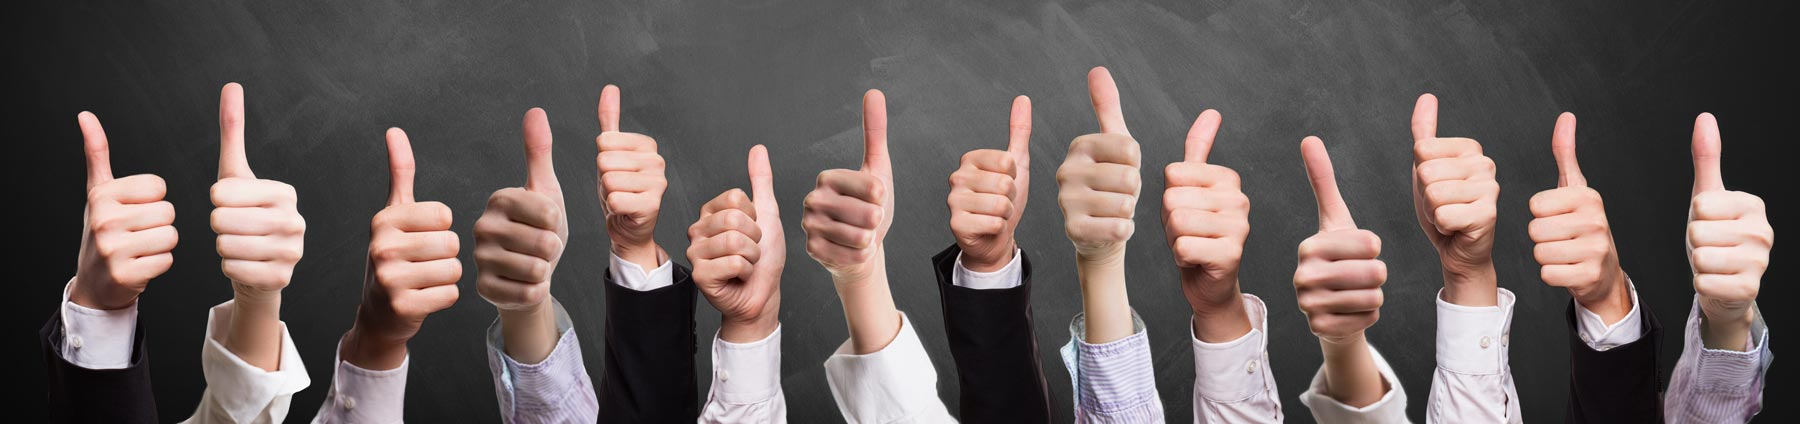 Thumbs up new hire